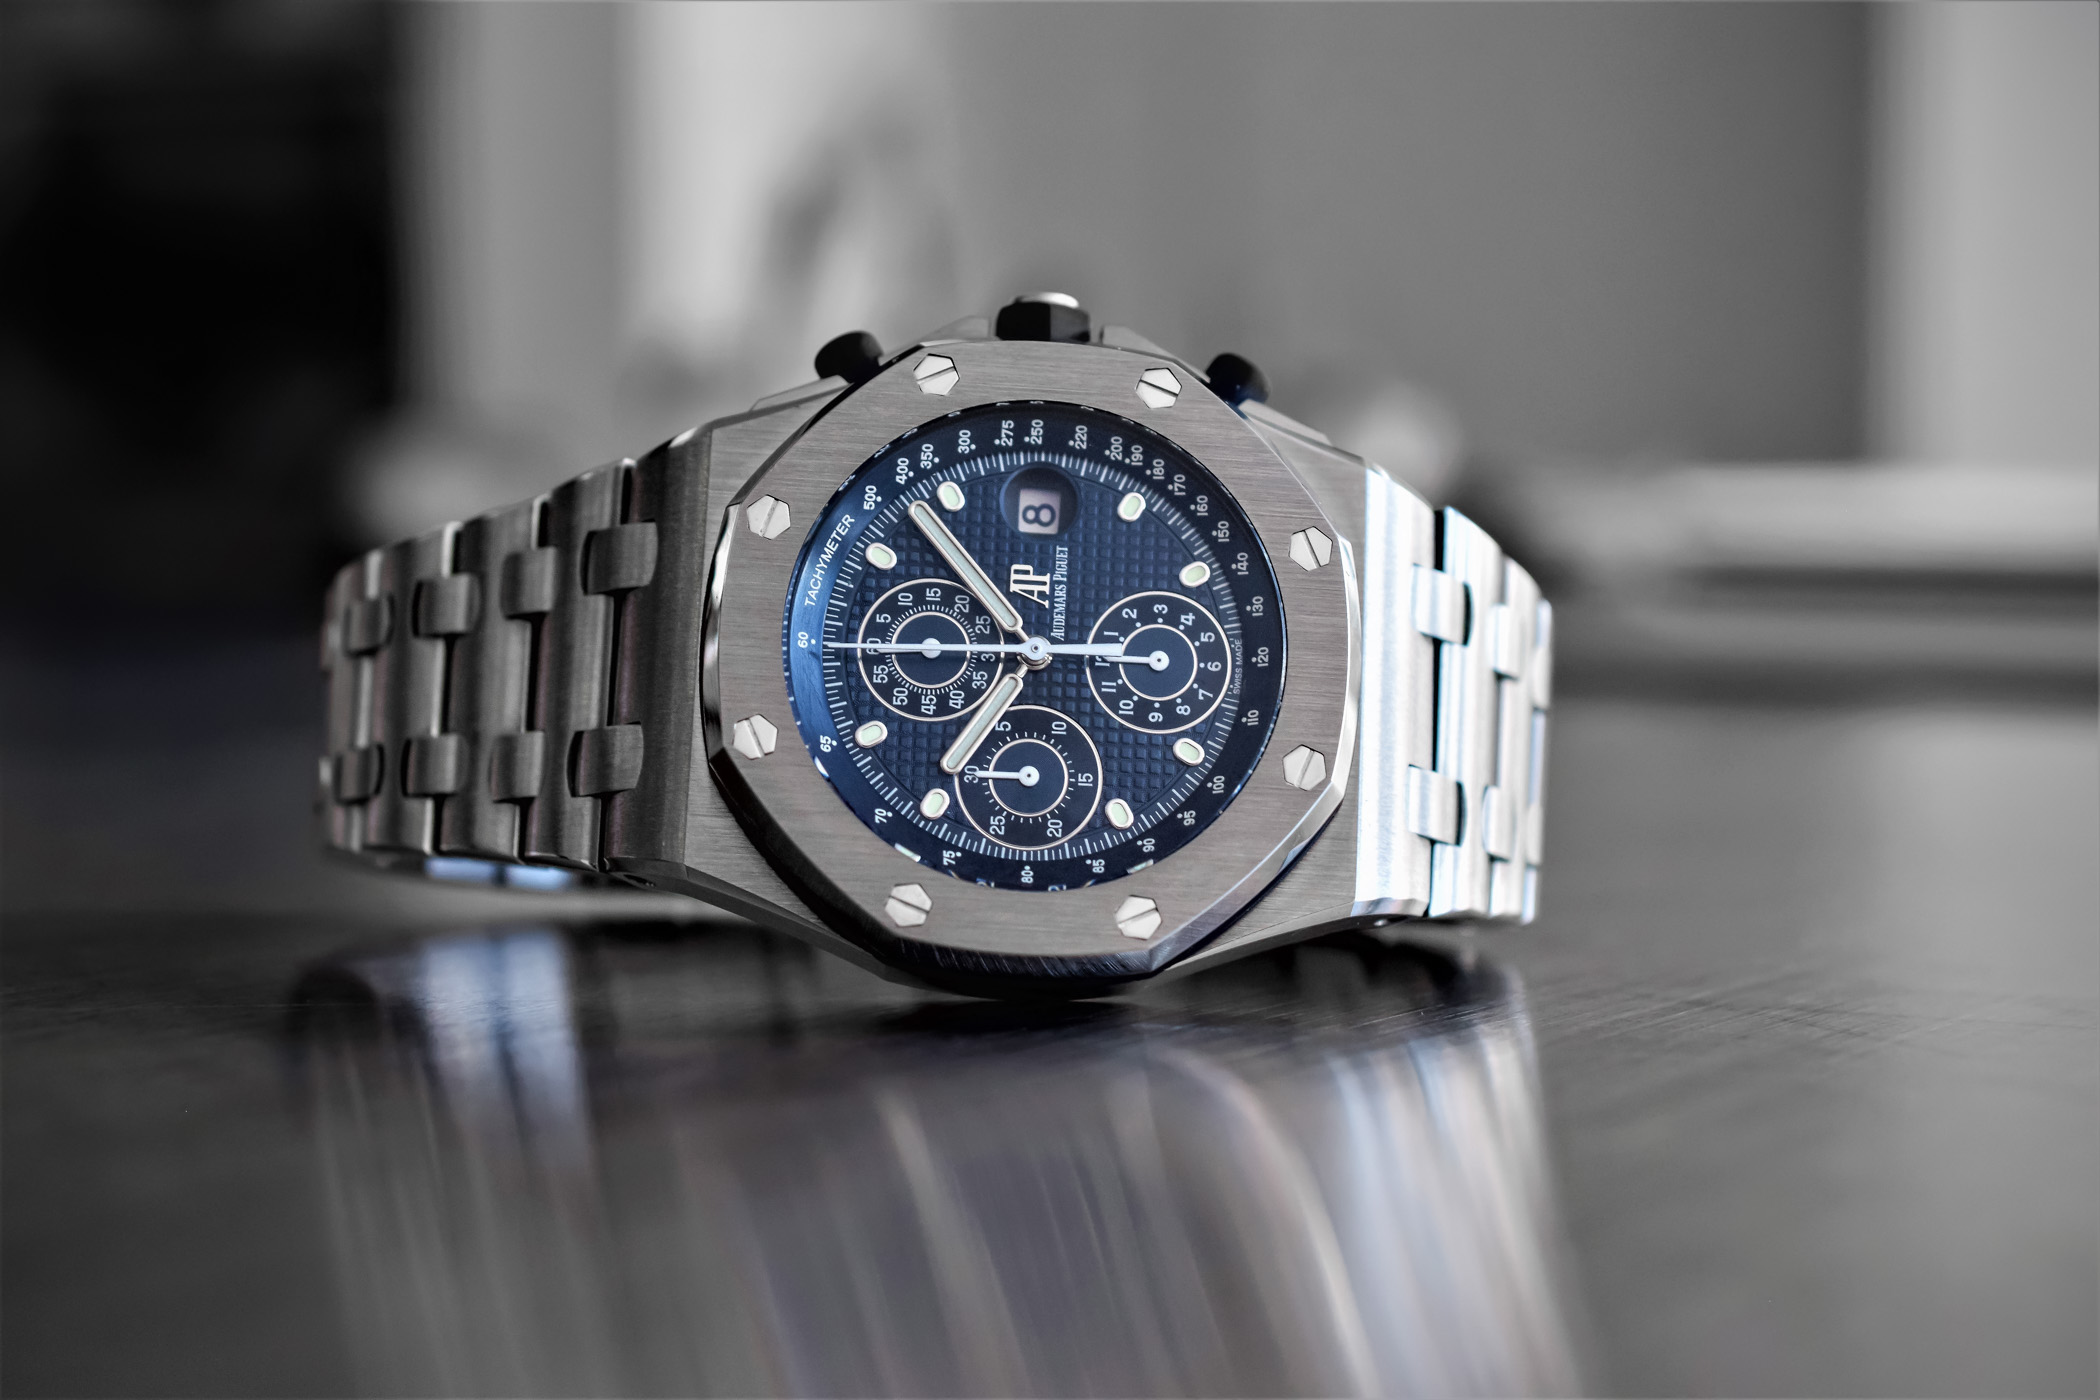 On this royal oak offshore re edition ref 26237st we have the same 42mm cushion shaped stainless steel case with the same design and the same finishing